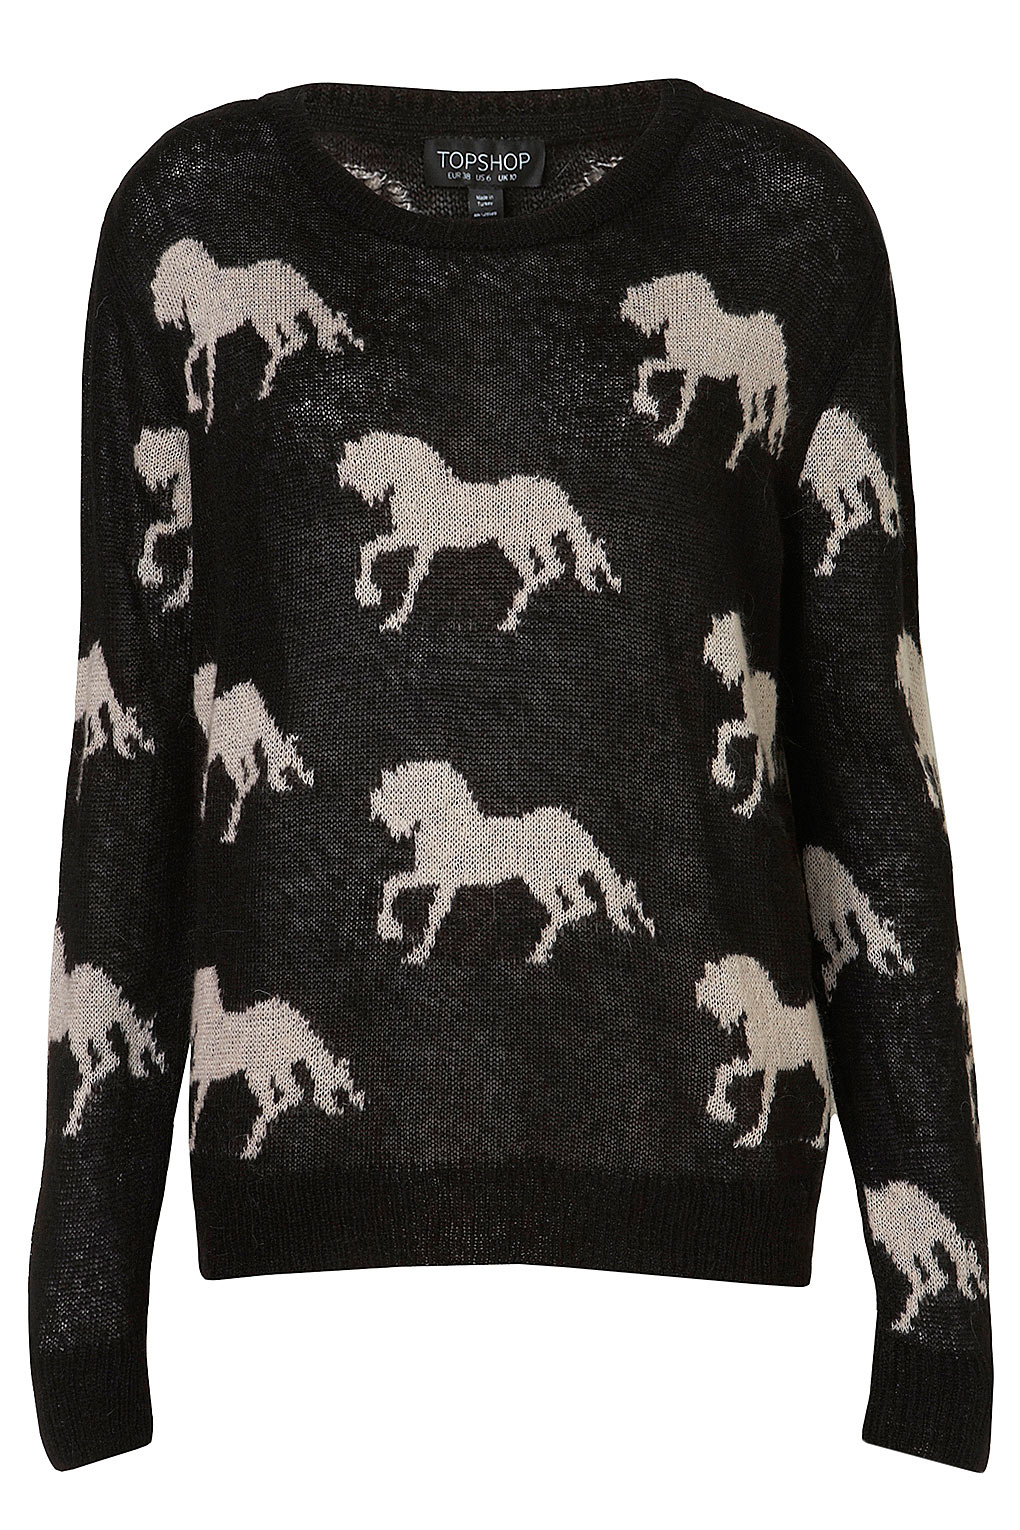 Topshop Knitted All Over Horses Jumper in Black Lyst